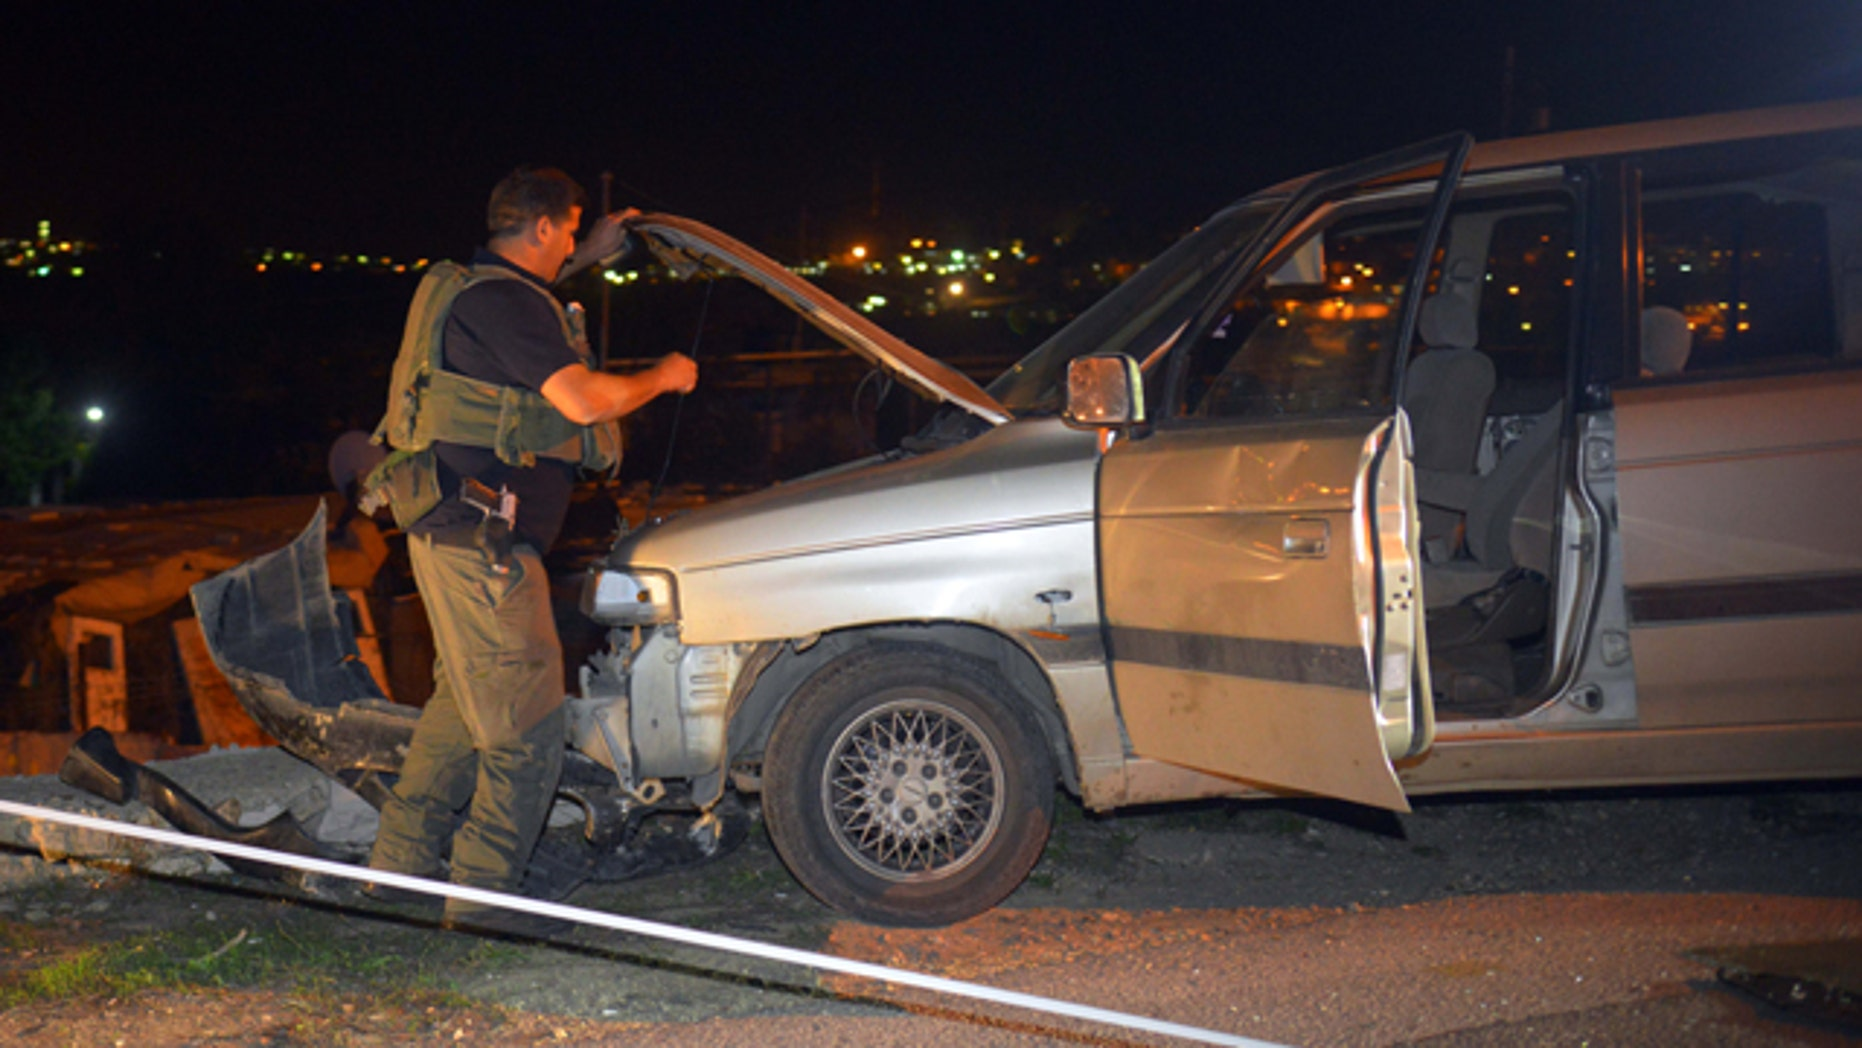 November 10, 2014: An Israeli soldier inspects a vehicle at the scene of an attack near the West Bank Jewish settlement of Alon Shvut. (AP Photo/Mahmoud Illean)